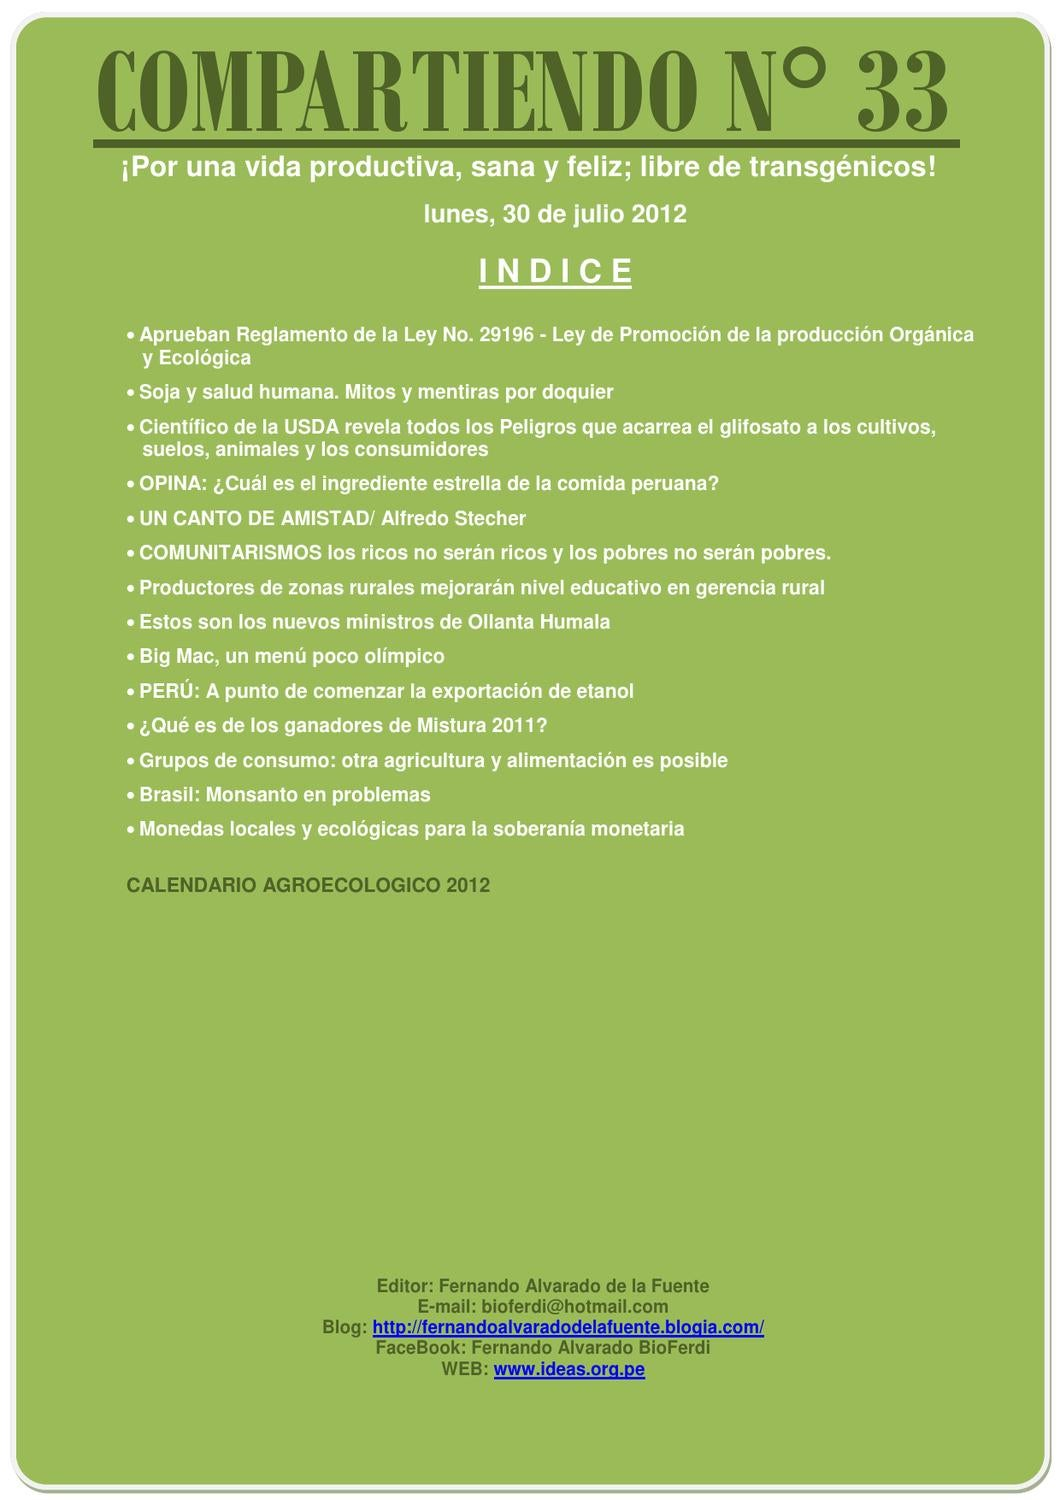 Boletin_Compartiendo12_33 by Centro Ideas ONG - issuu